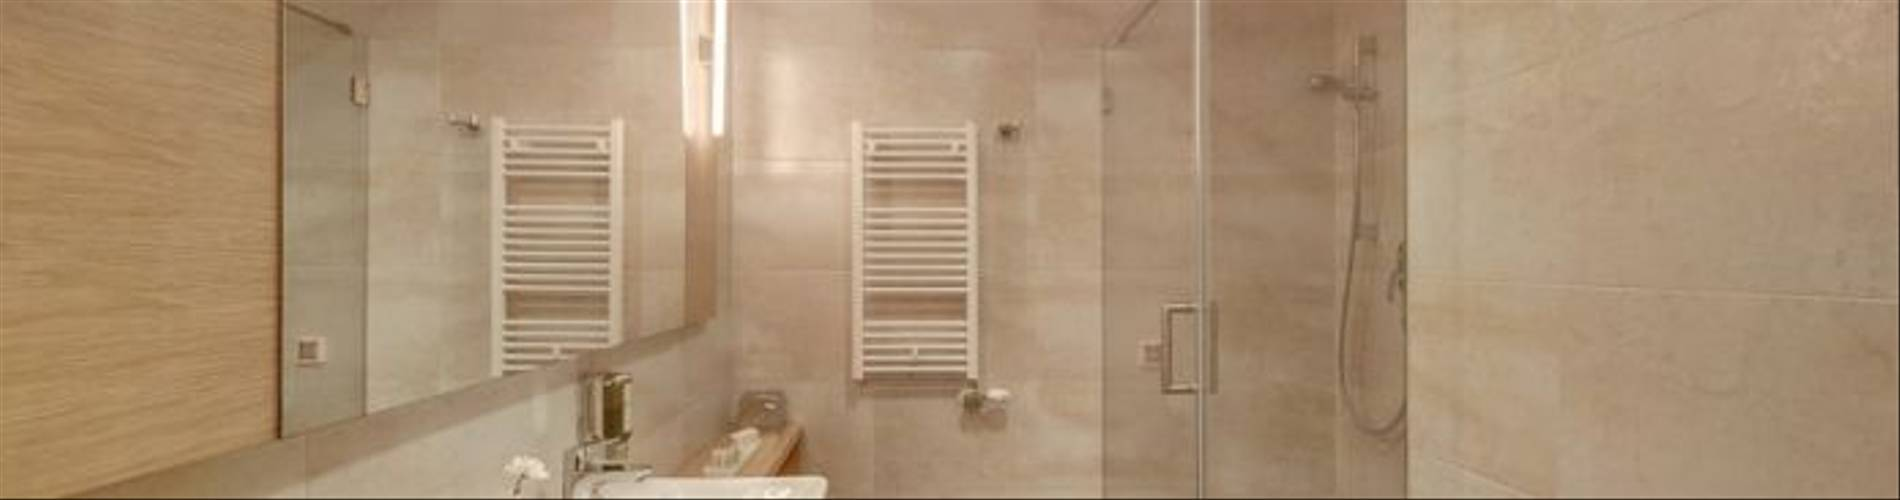 HotelResidence_DIOKLECIJAN_room-wc-interier-shower_2048px_5D3A2508-695x409.jpg